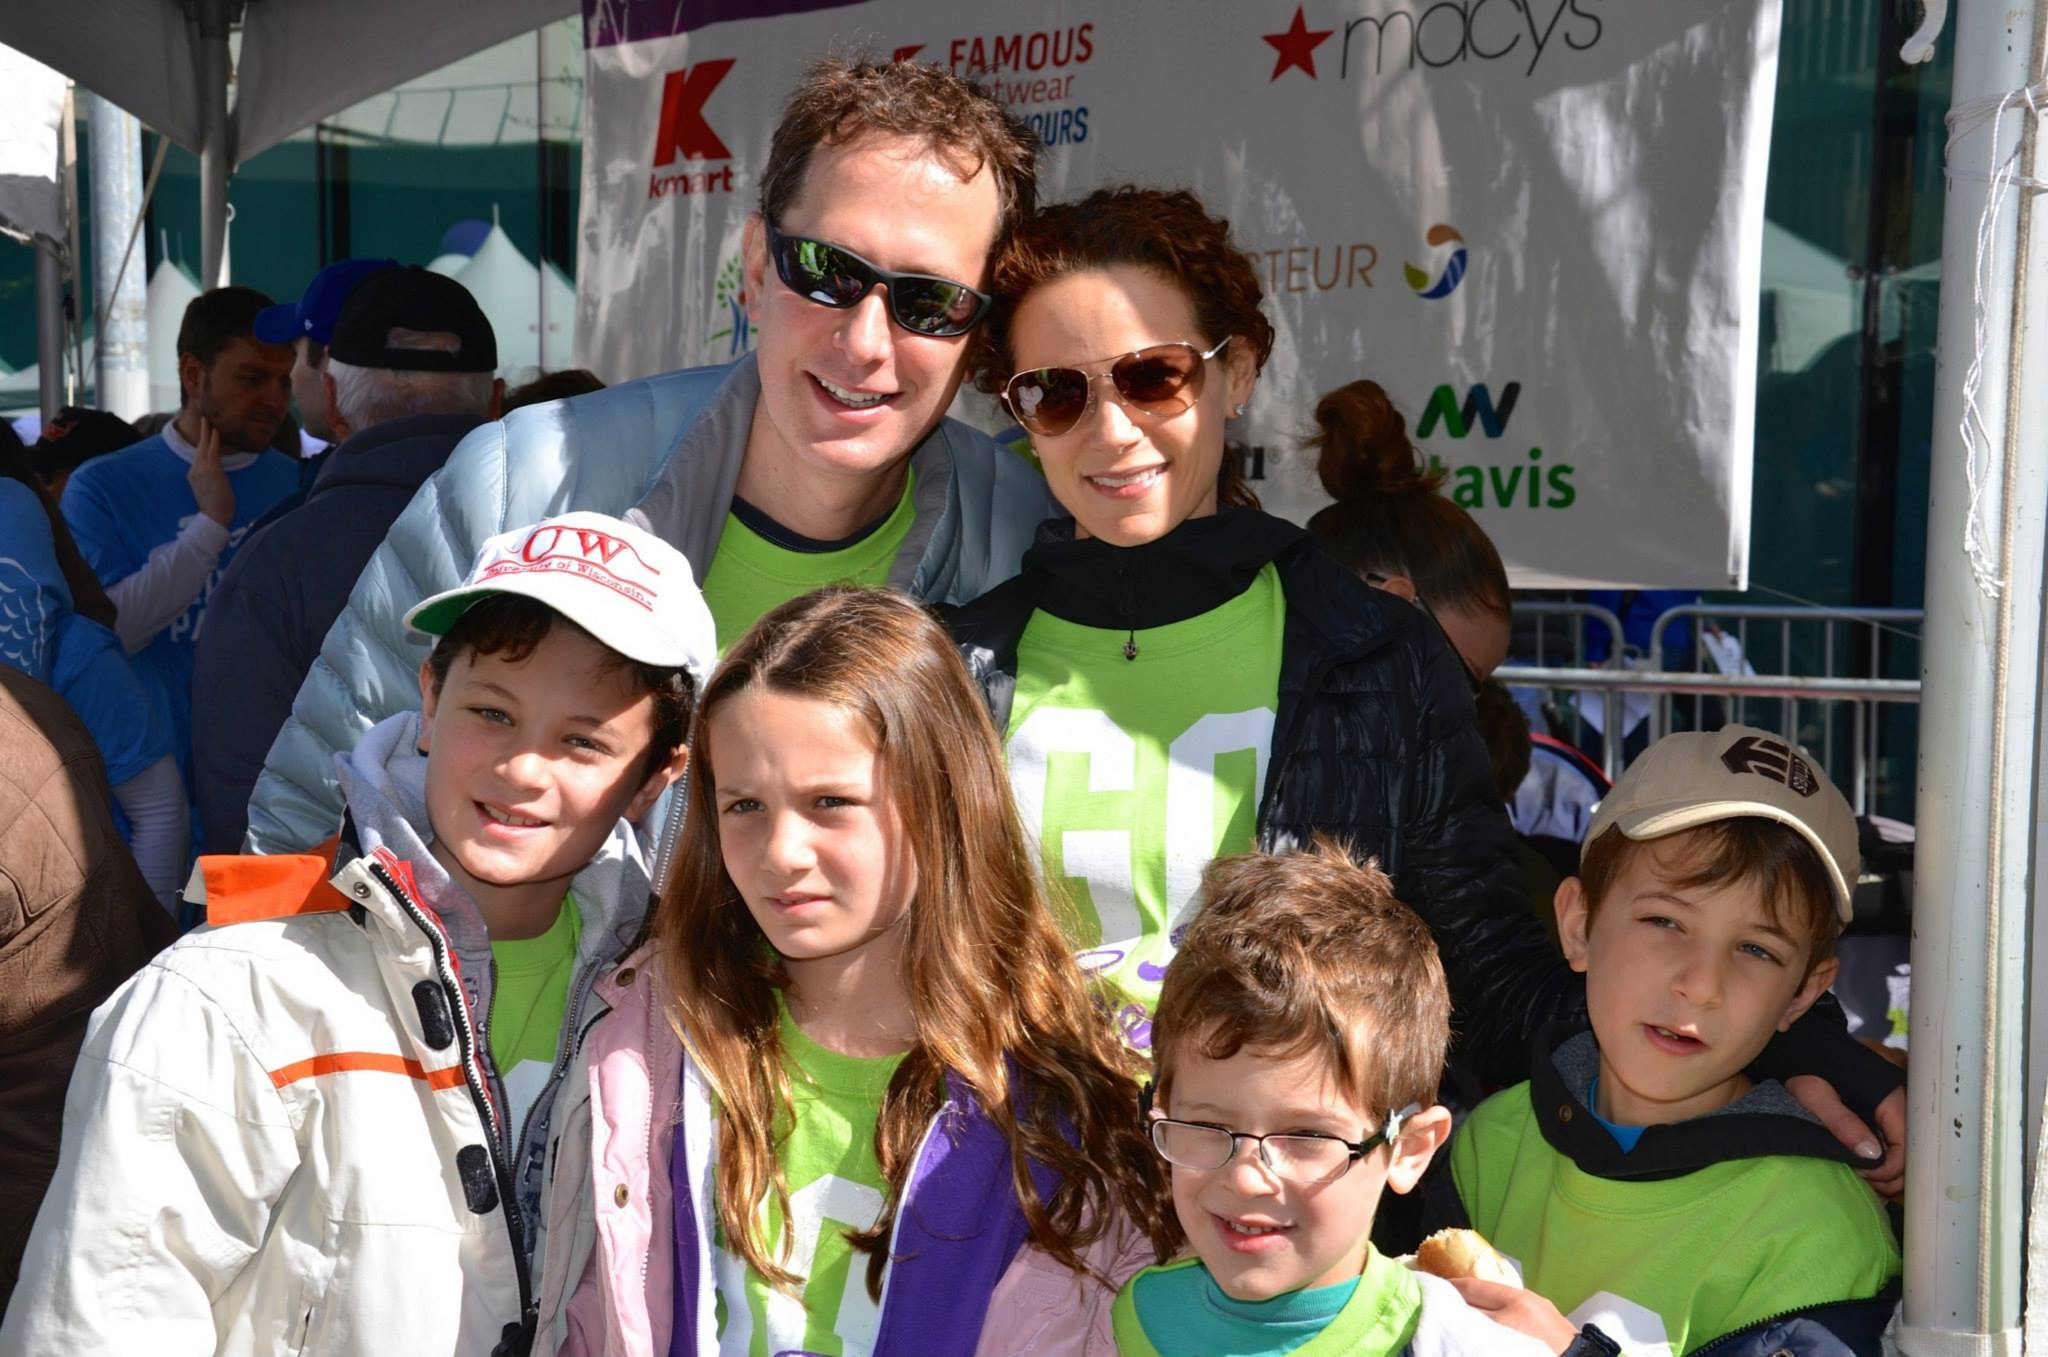 small-family-at-the-2015-march-for-babies-walk_16891569266_o.jpg